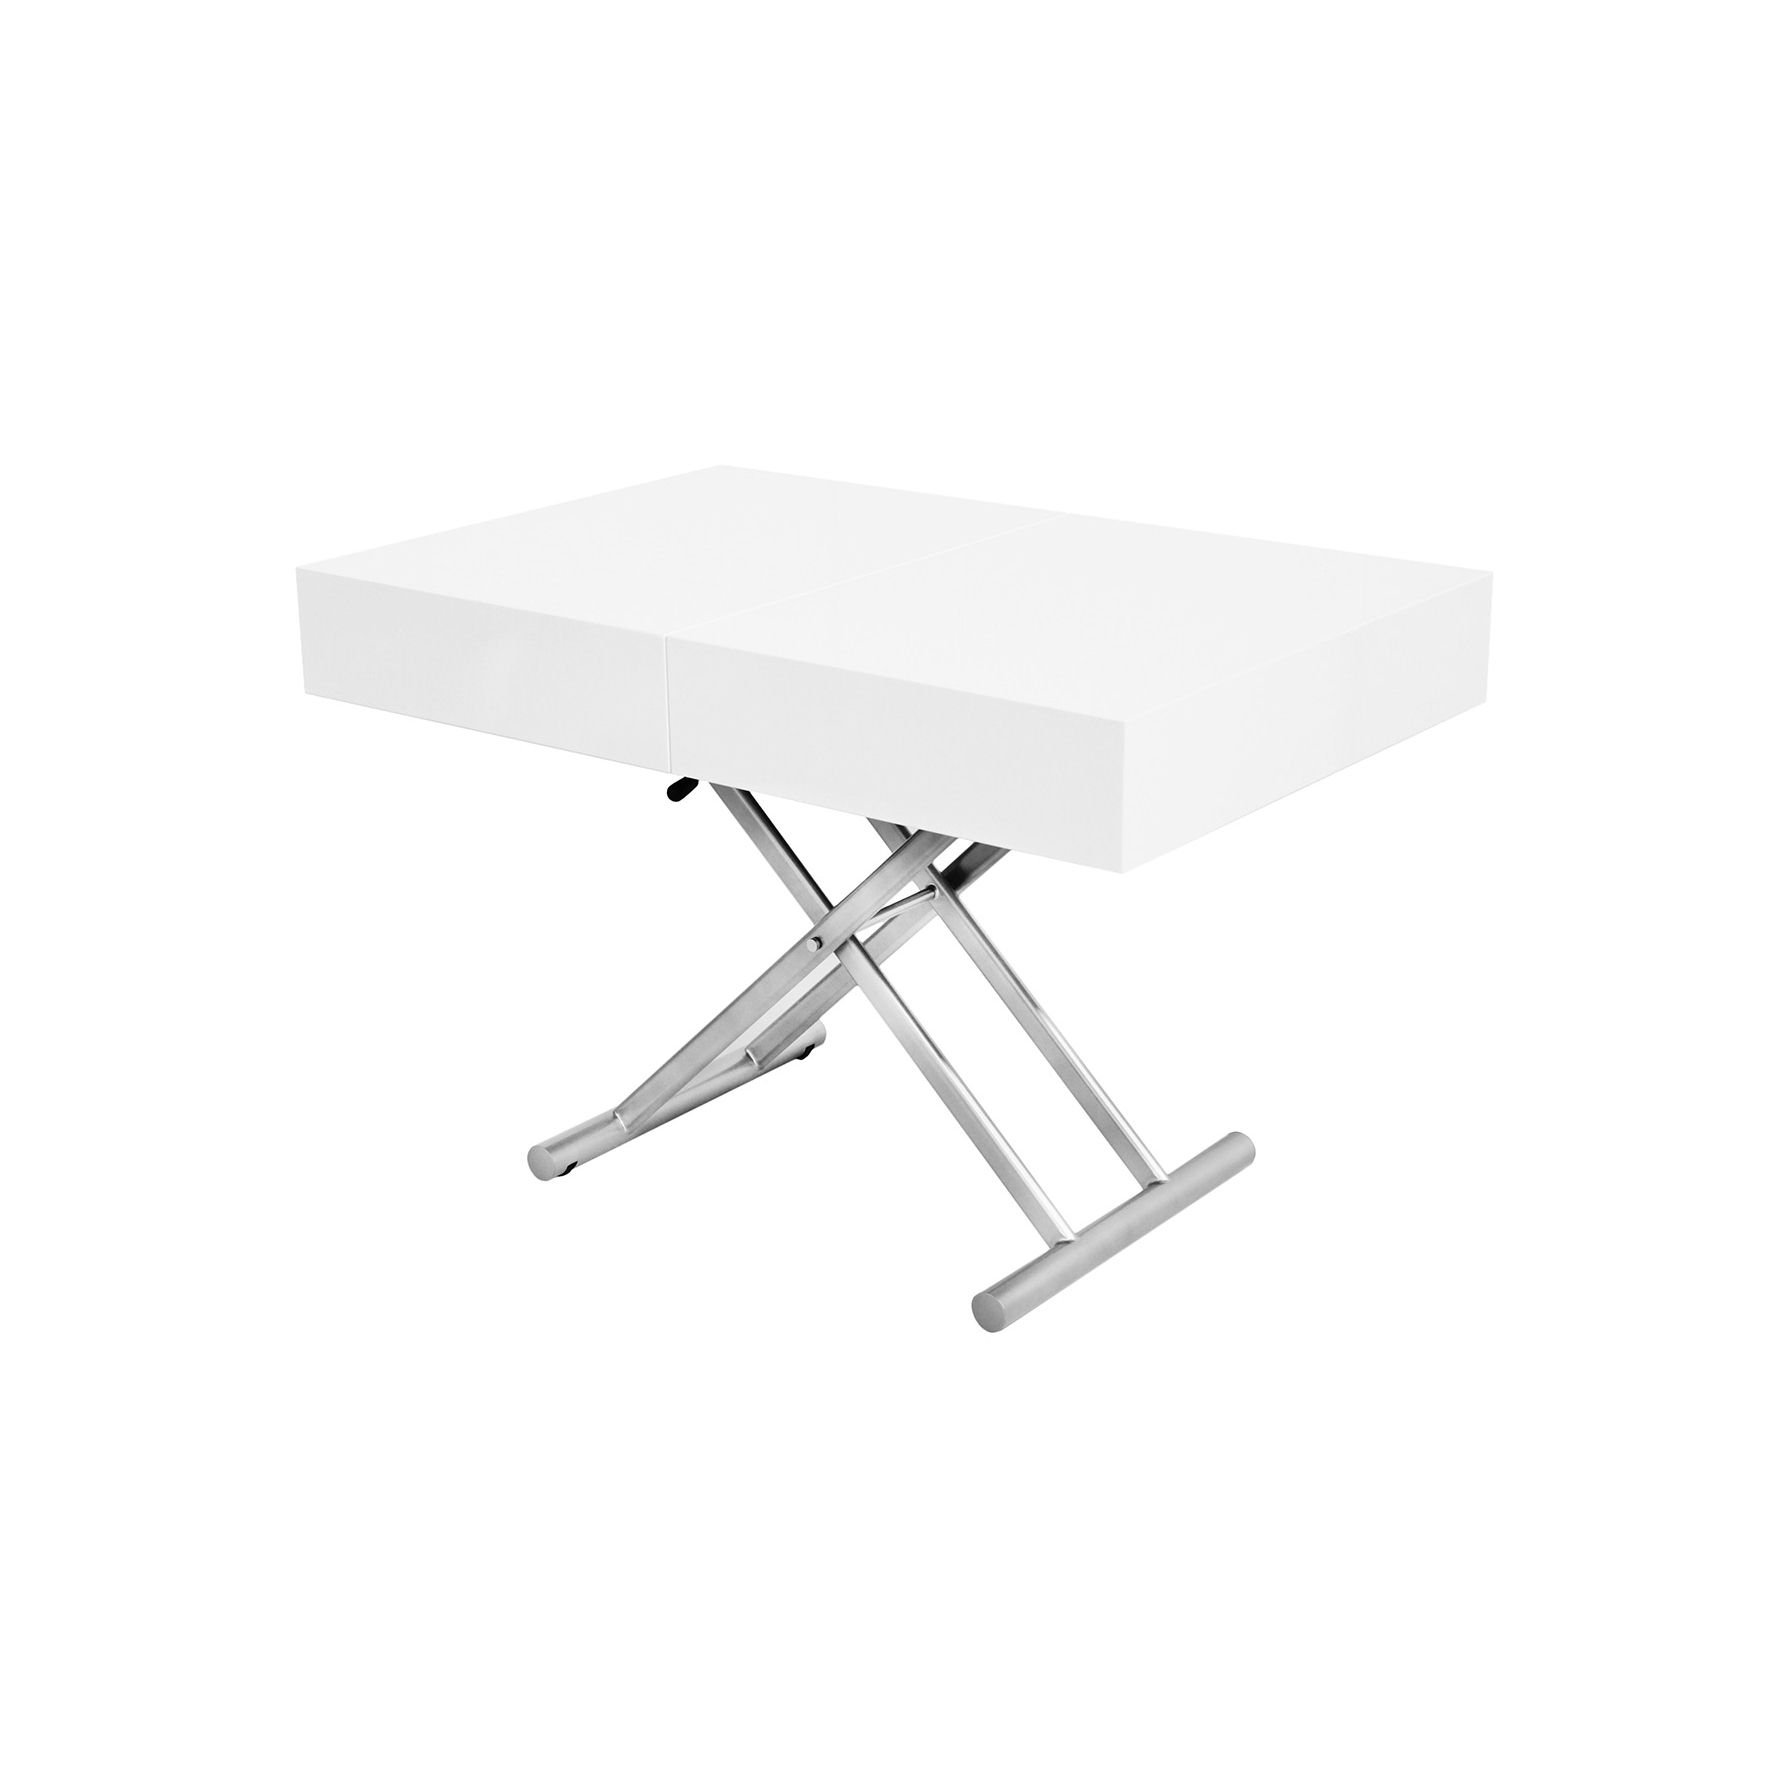 deco in paris table basse relevable extensible blanche laquee smart tab rel mdf smart blanc. Black Bedroom Furniture Sets. Home Design Ideas